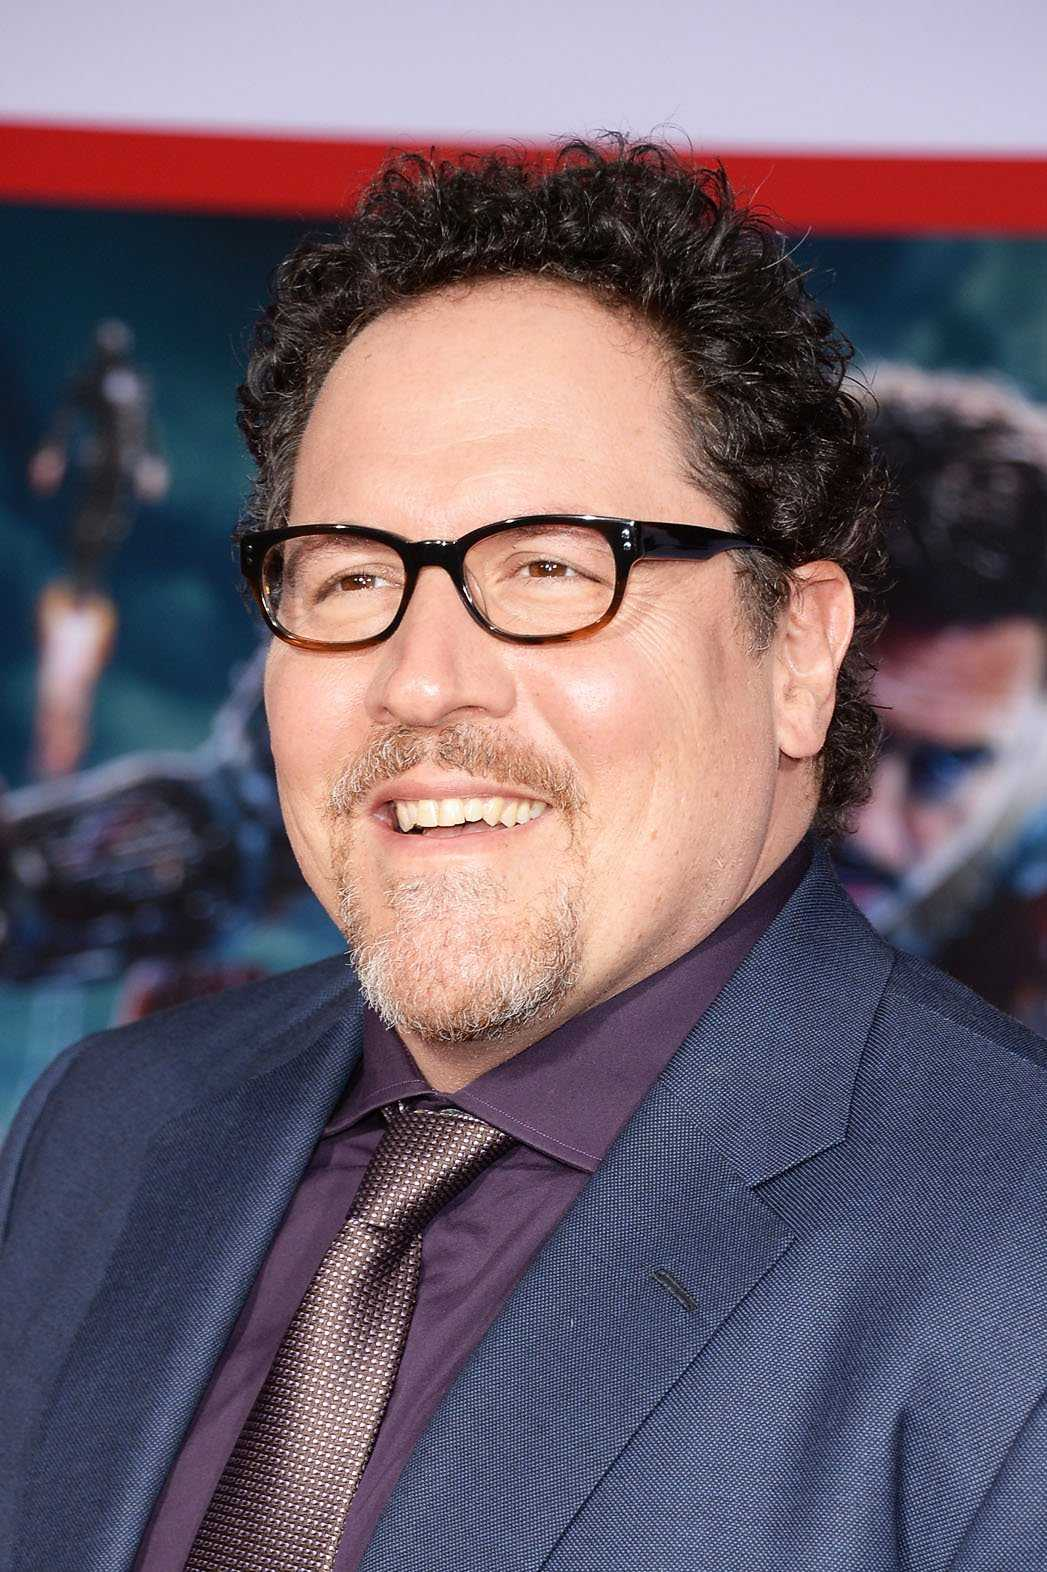 Jon Favreau Set To Direct A Live Action Jungle Book Reboot For Disney